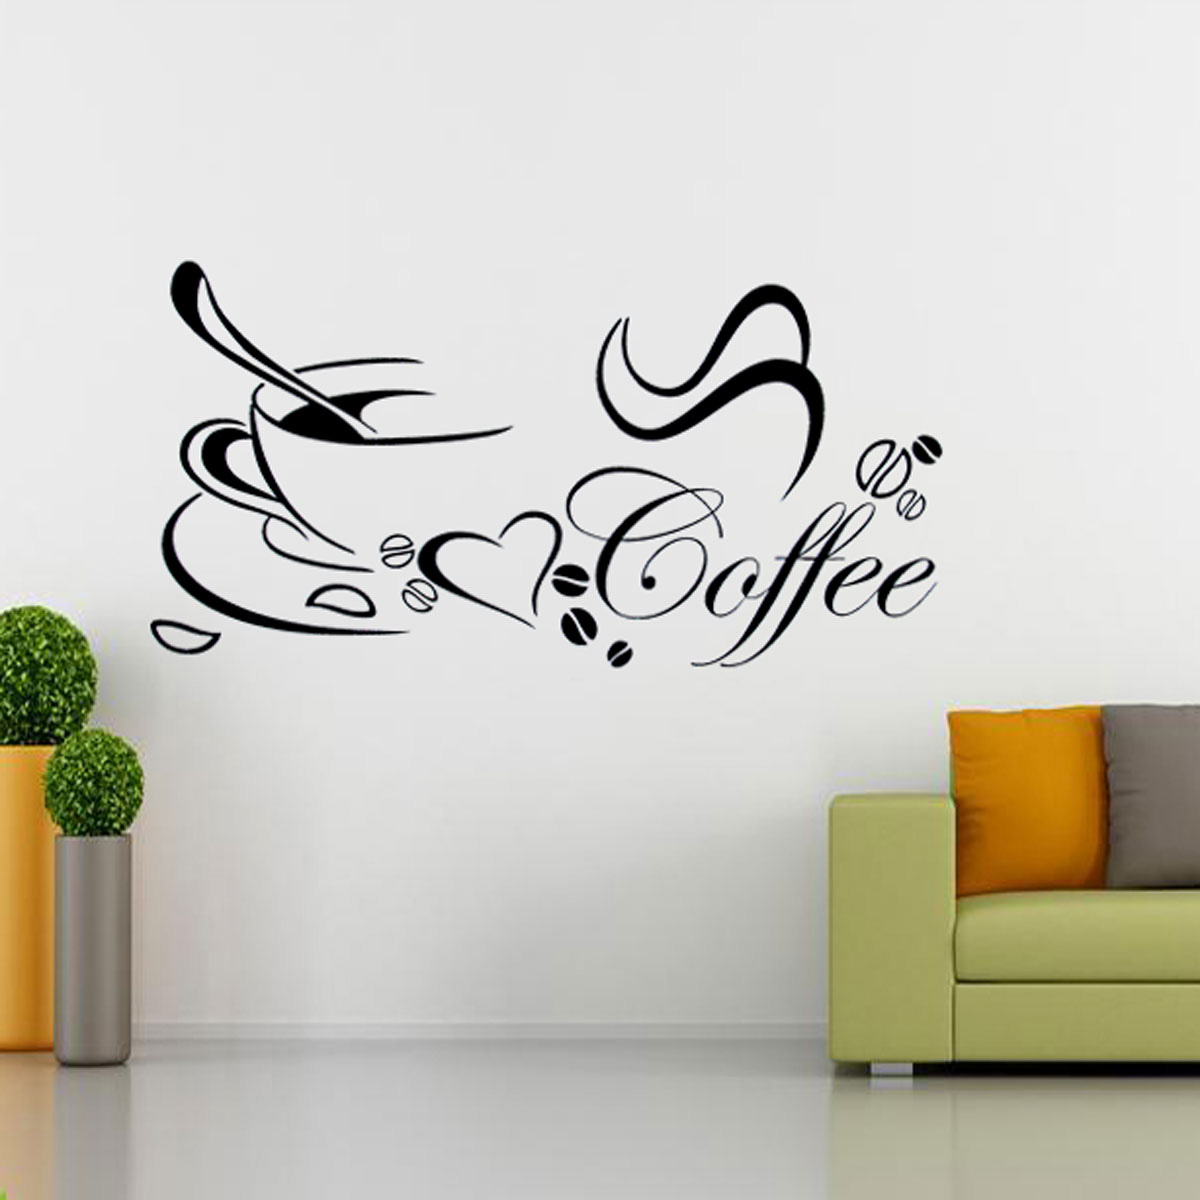 diy removable coffee cup quote word decal vinyl home. Black Bedroom Furniture Sets. Home Design Ideas